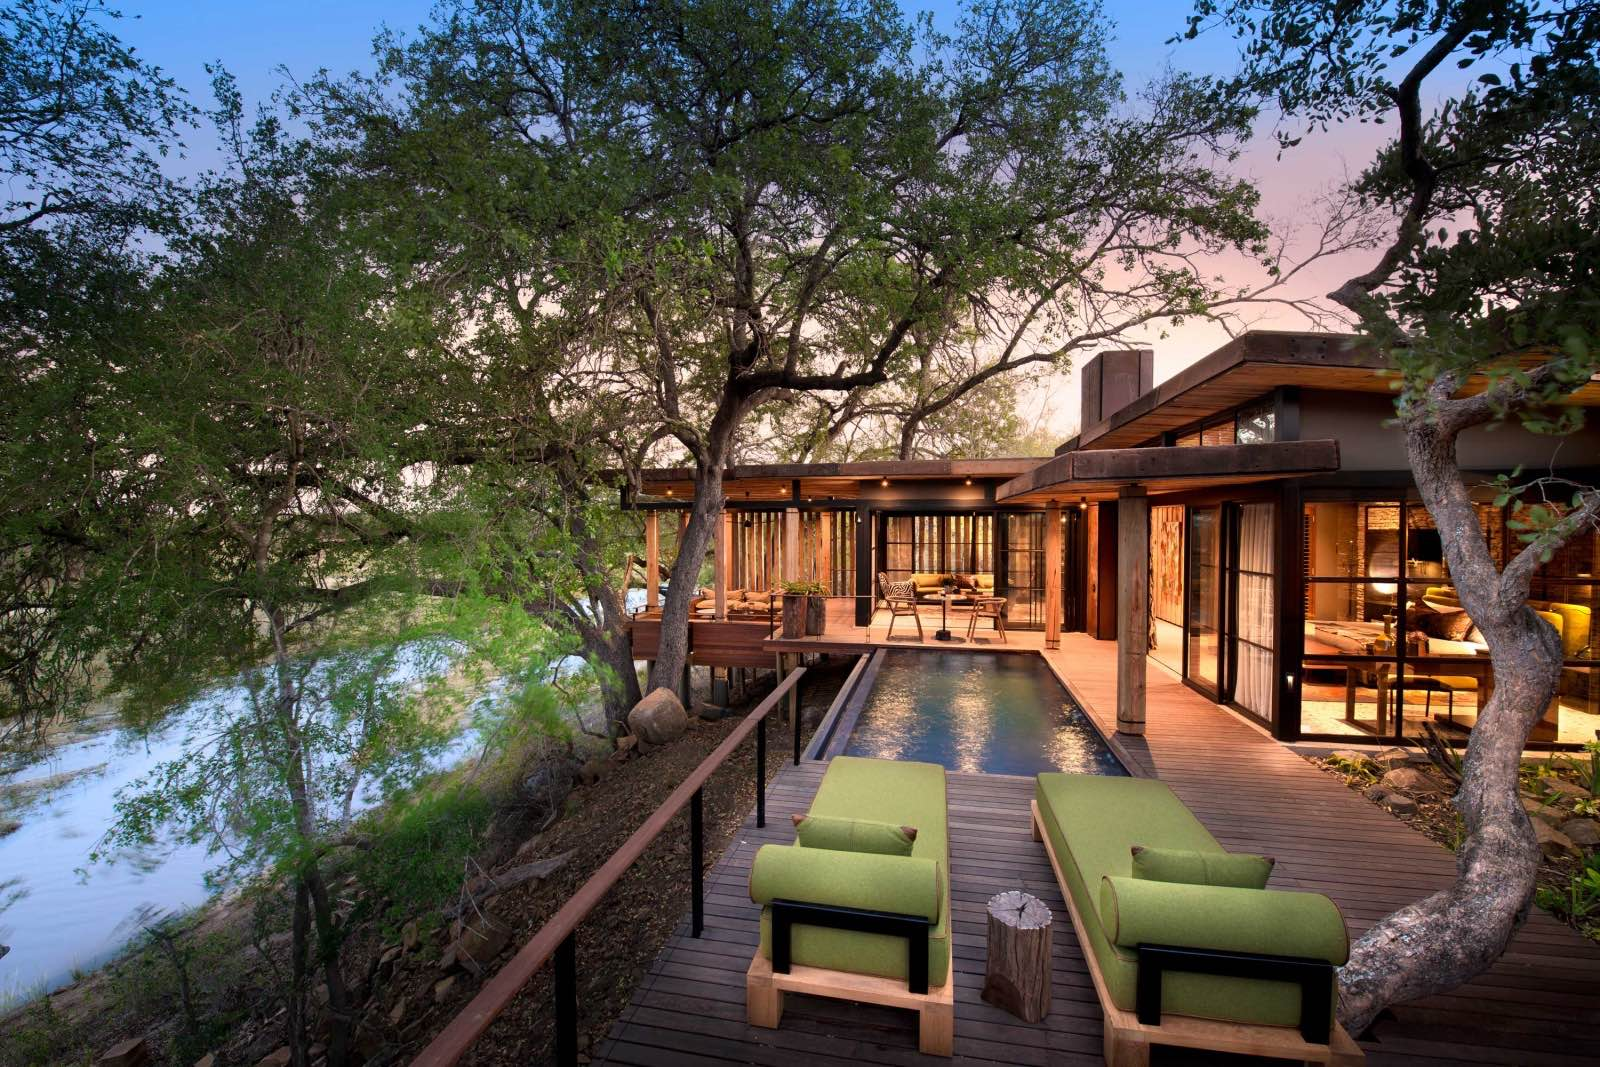 The expansive deck, lap pool, and viewing point of the Tengile guest suites